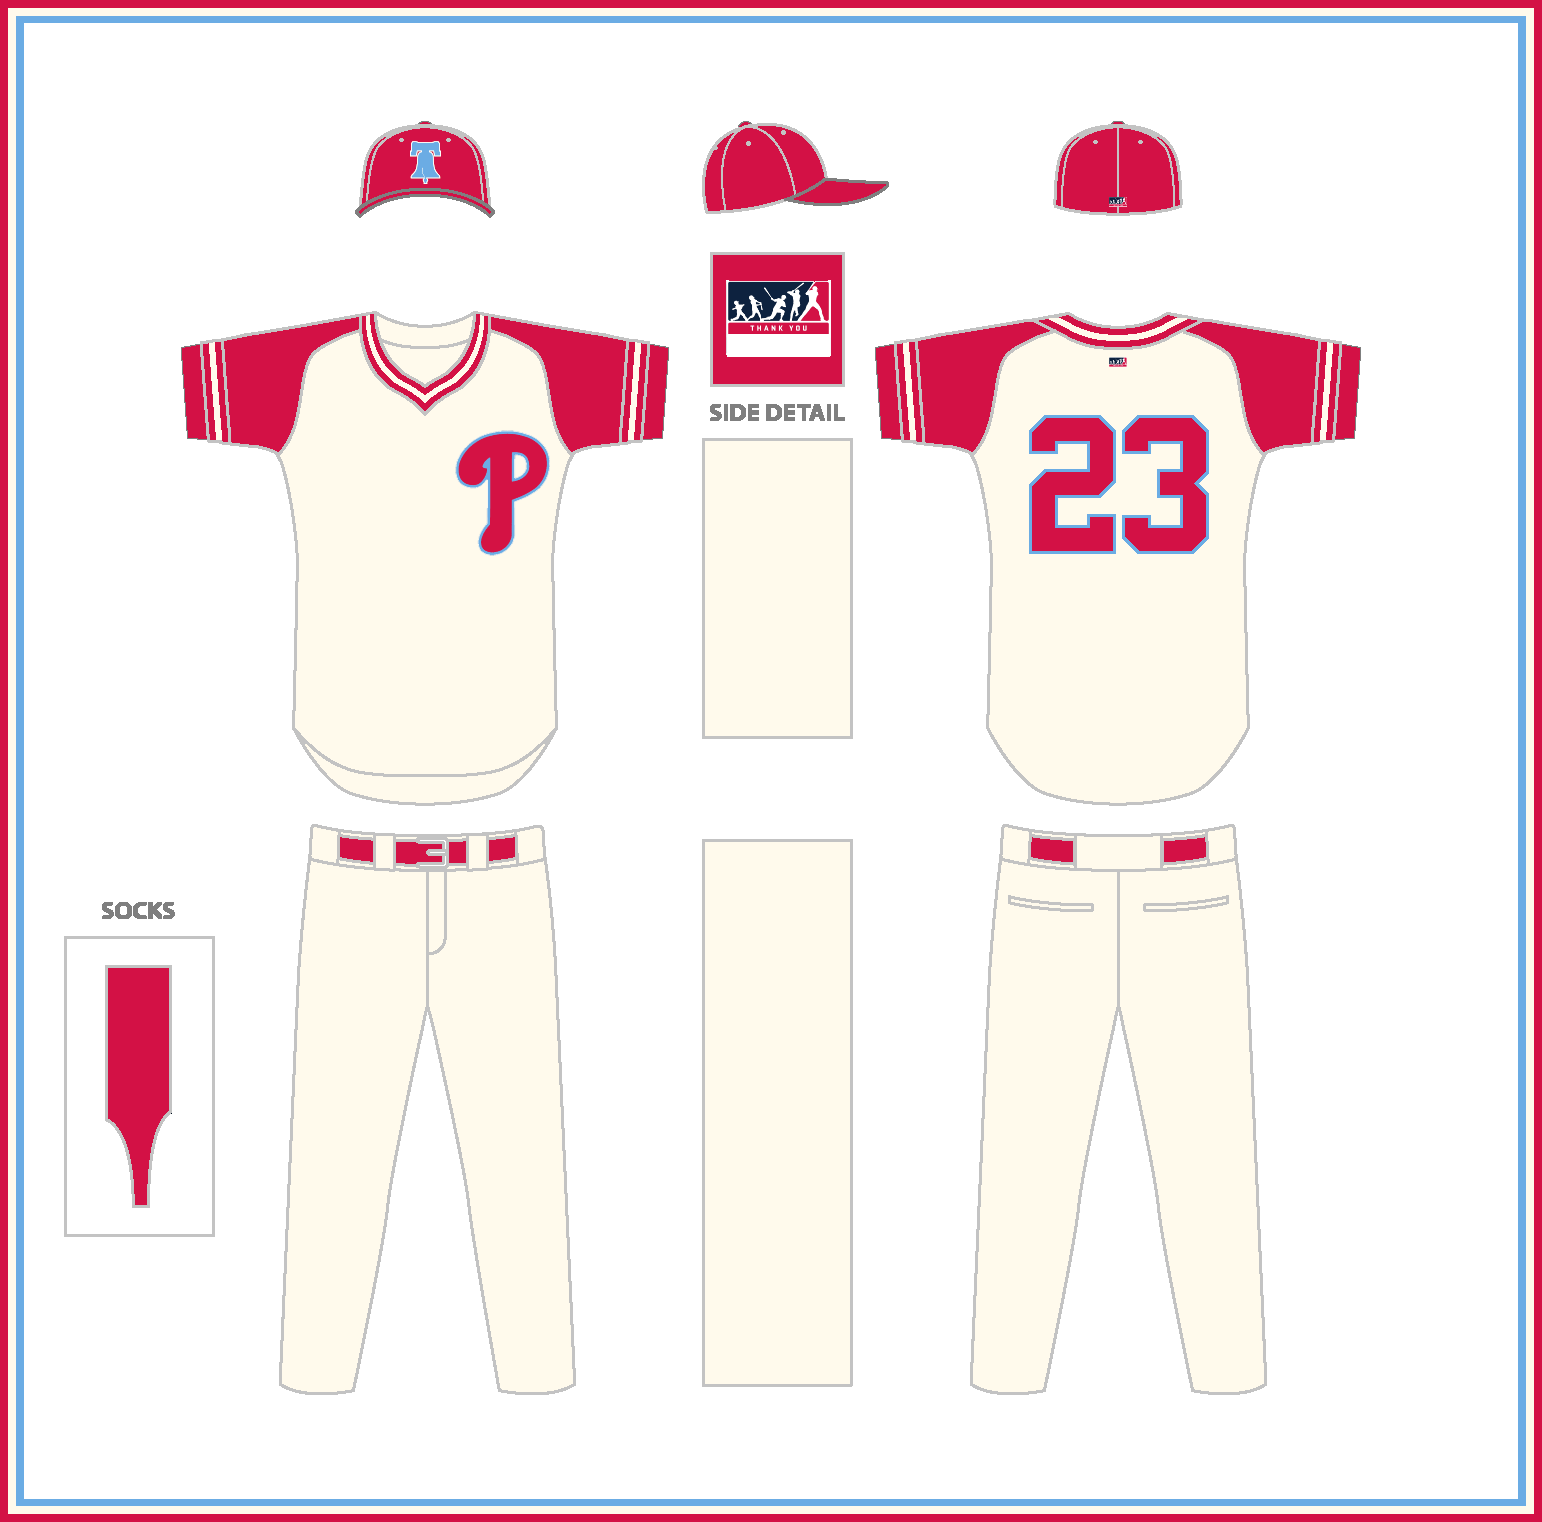 Phillies_w_outline.png